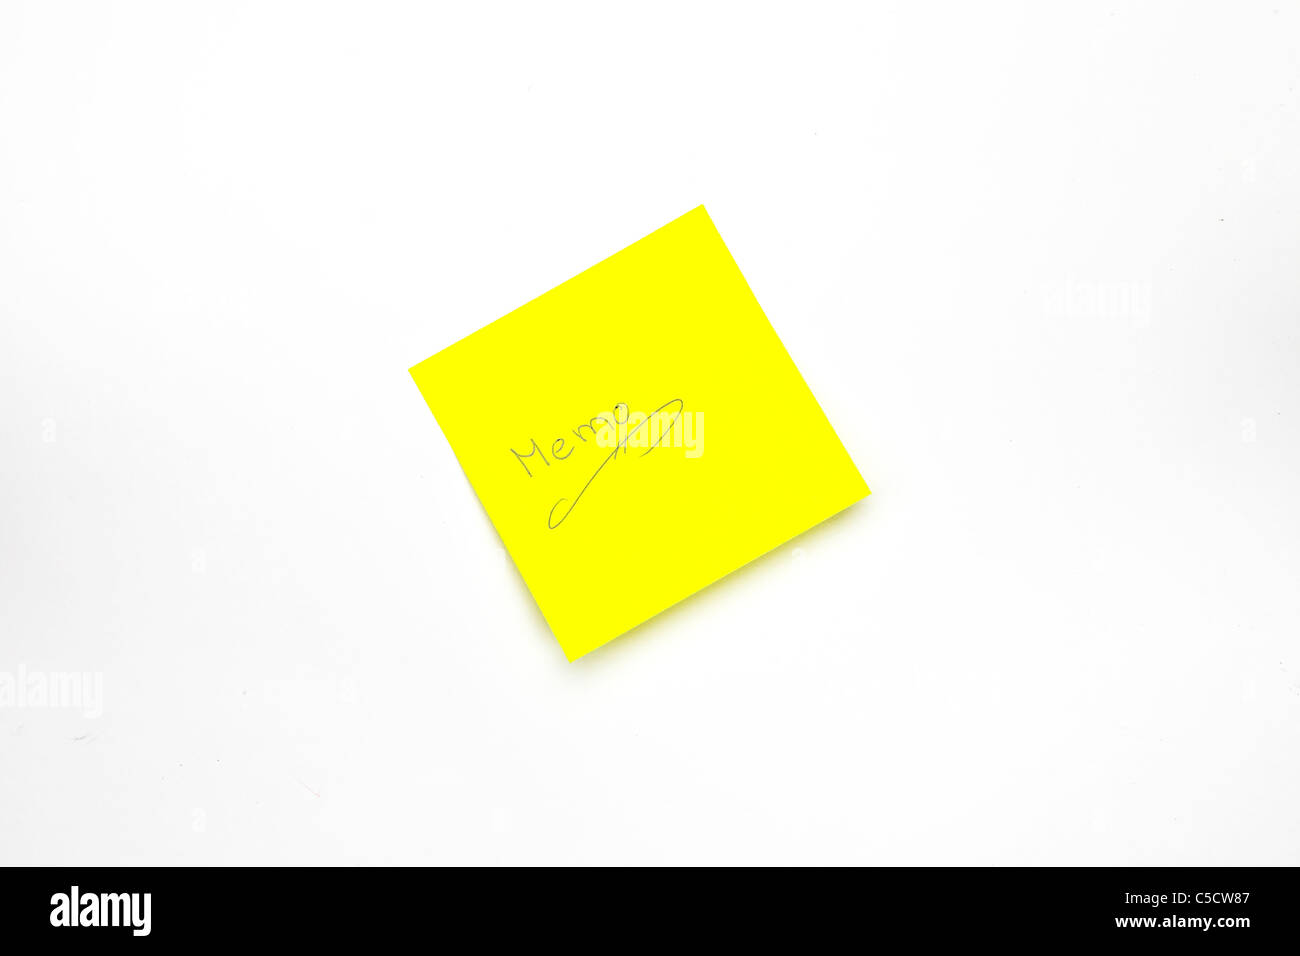 a yellow notepad with the word Memo - Stock Image